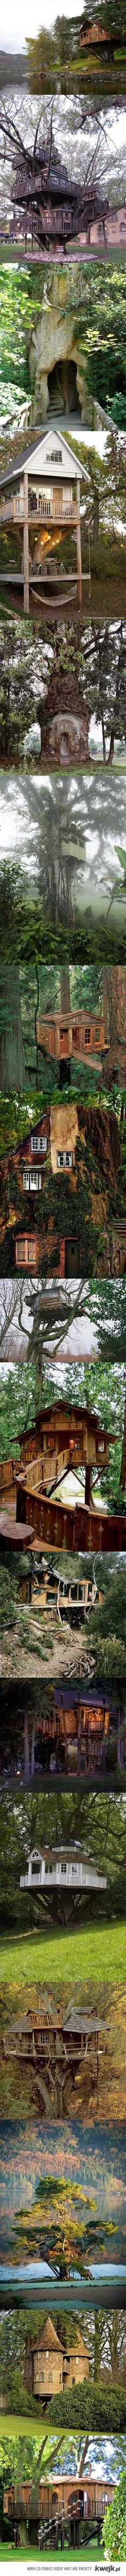 treehouses. i want to live in one